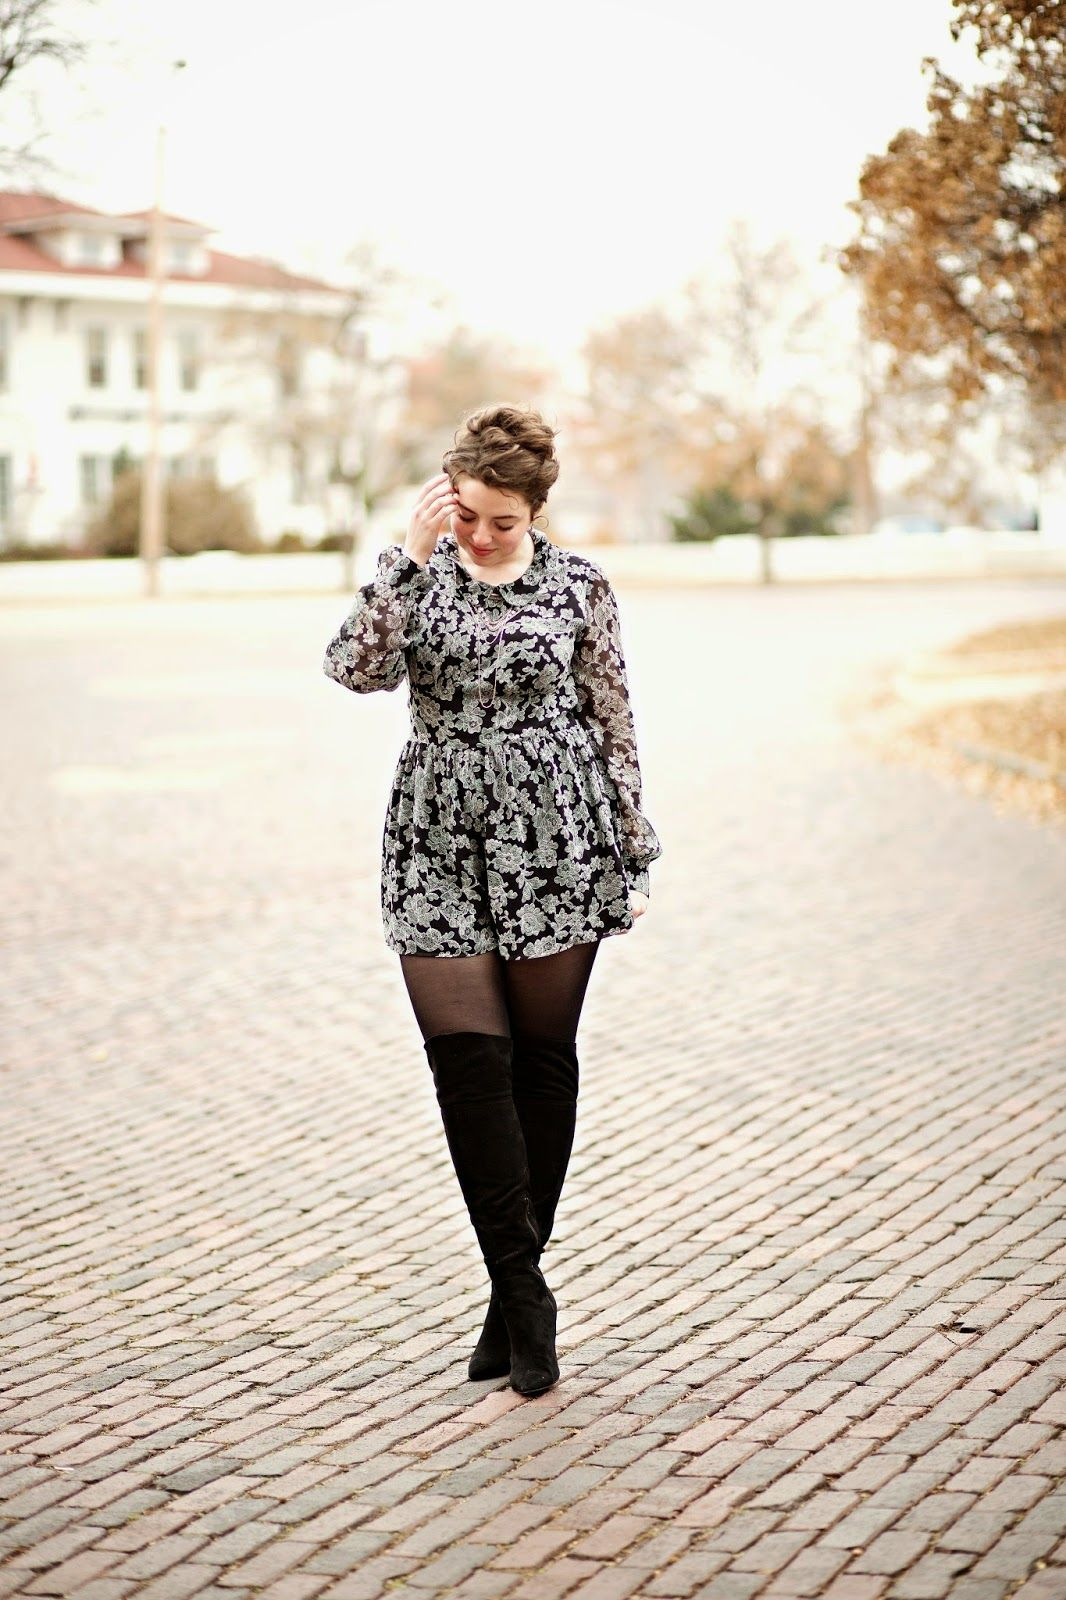 Floral Romper with tights for winter The Adored Life